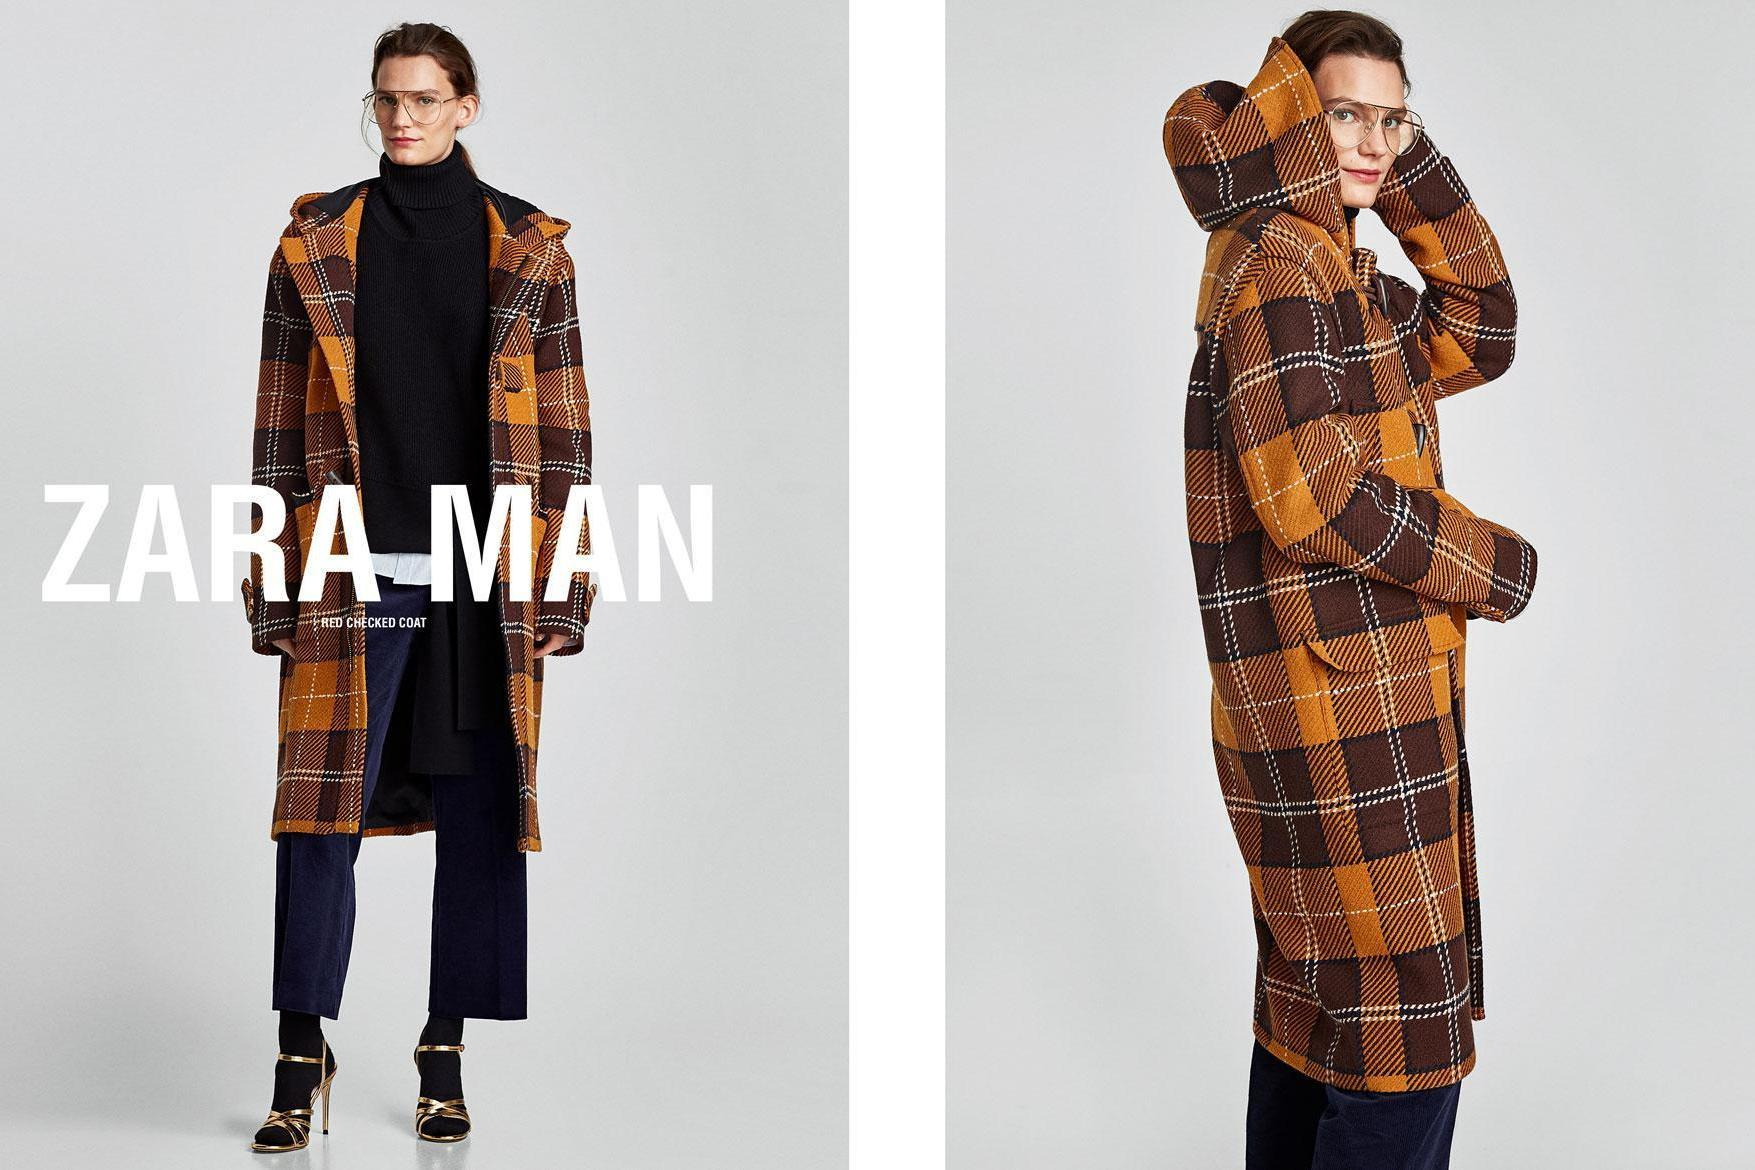 3c990940 Zara alludes to going gender-neutral, with men and women modelling same  clothes